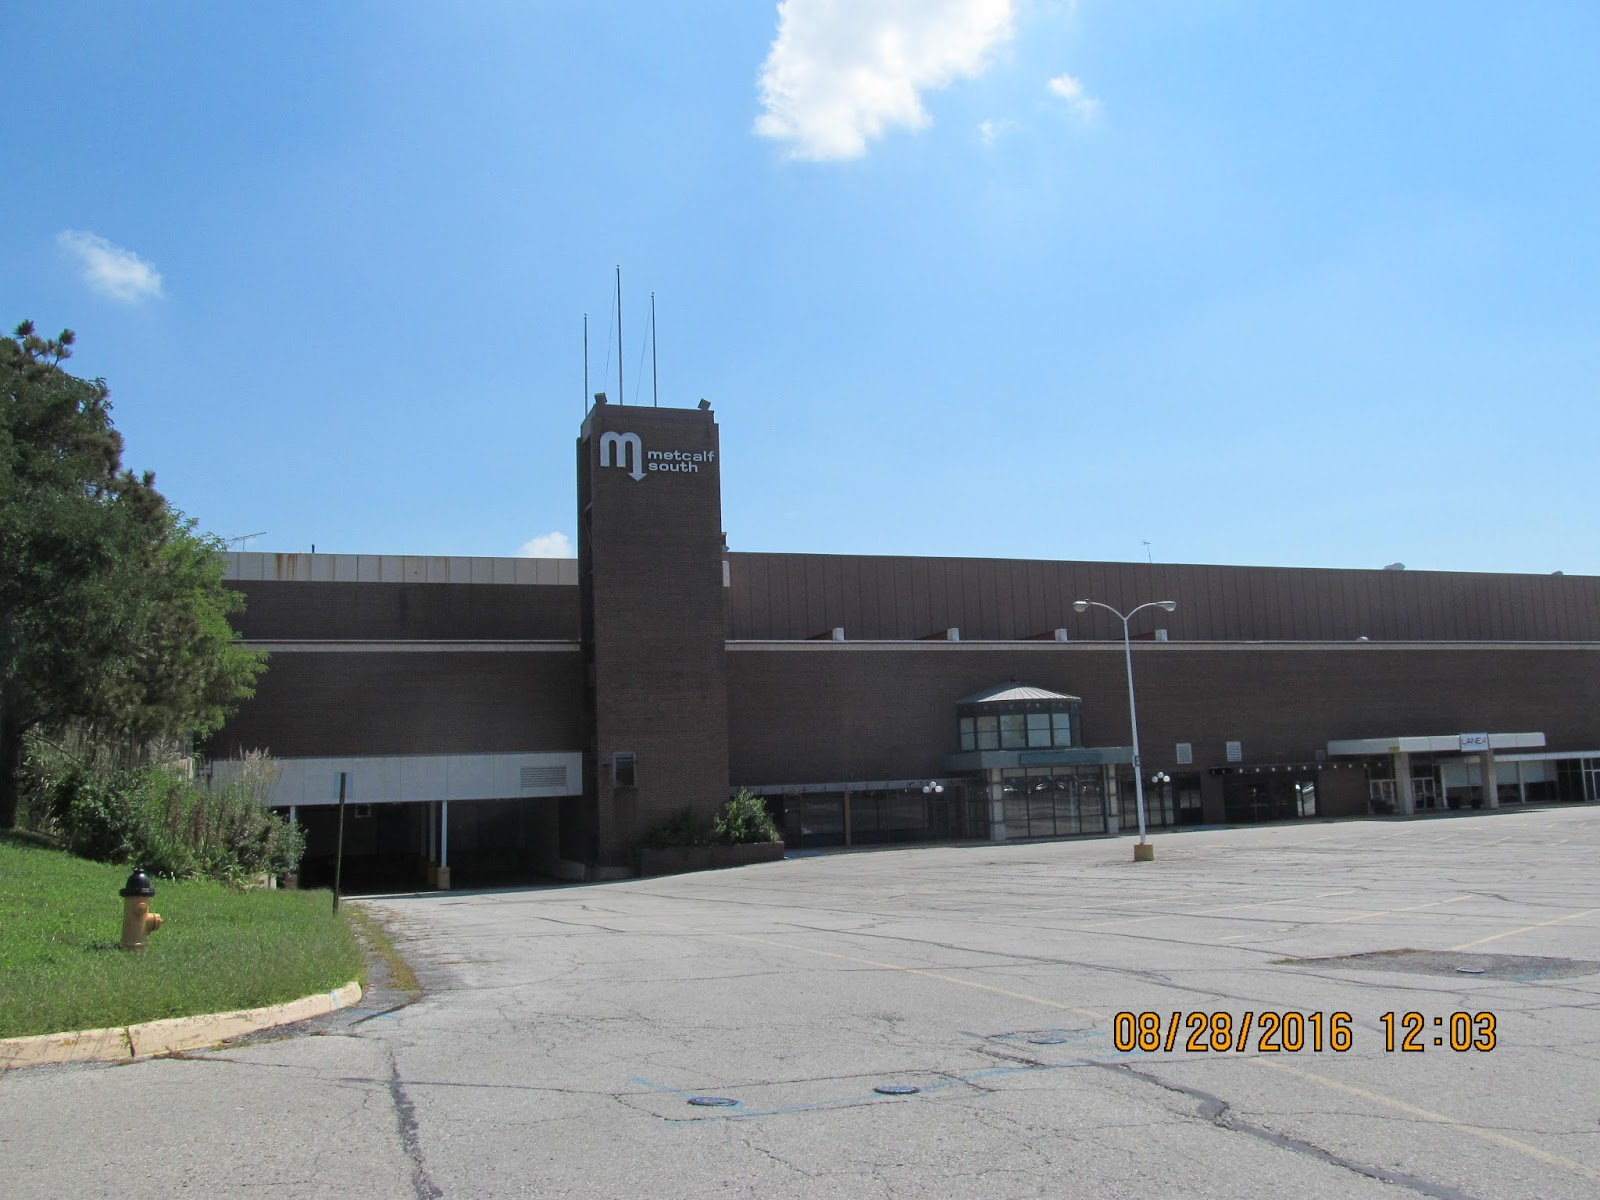 Metcalf Auto Plaza >> Trip to the Mall: Metcalf South 8/16 Update- Overland Park, Kansas